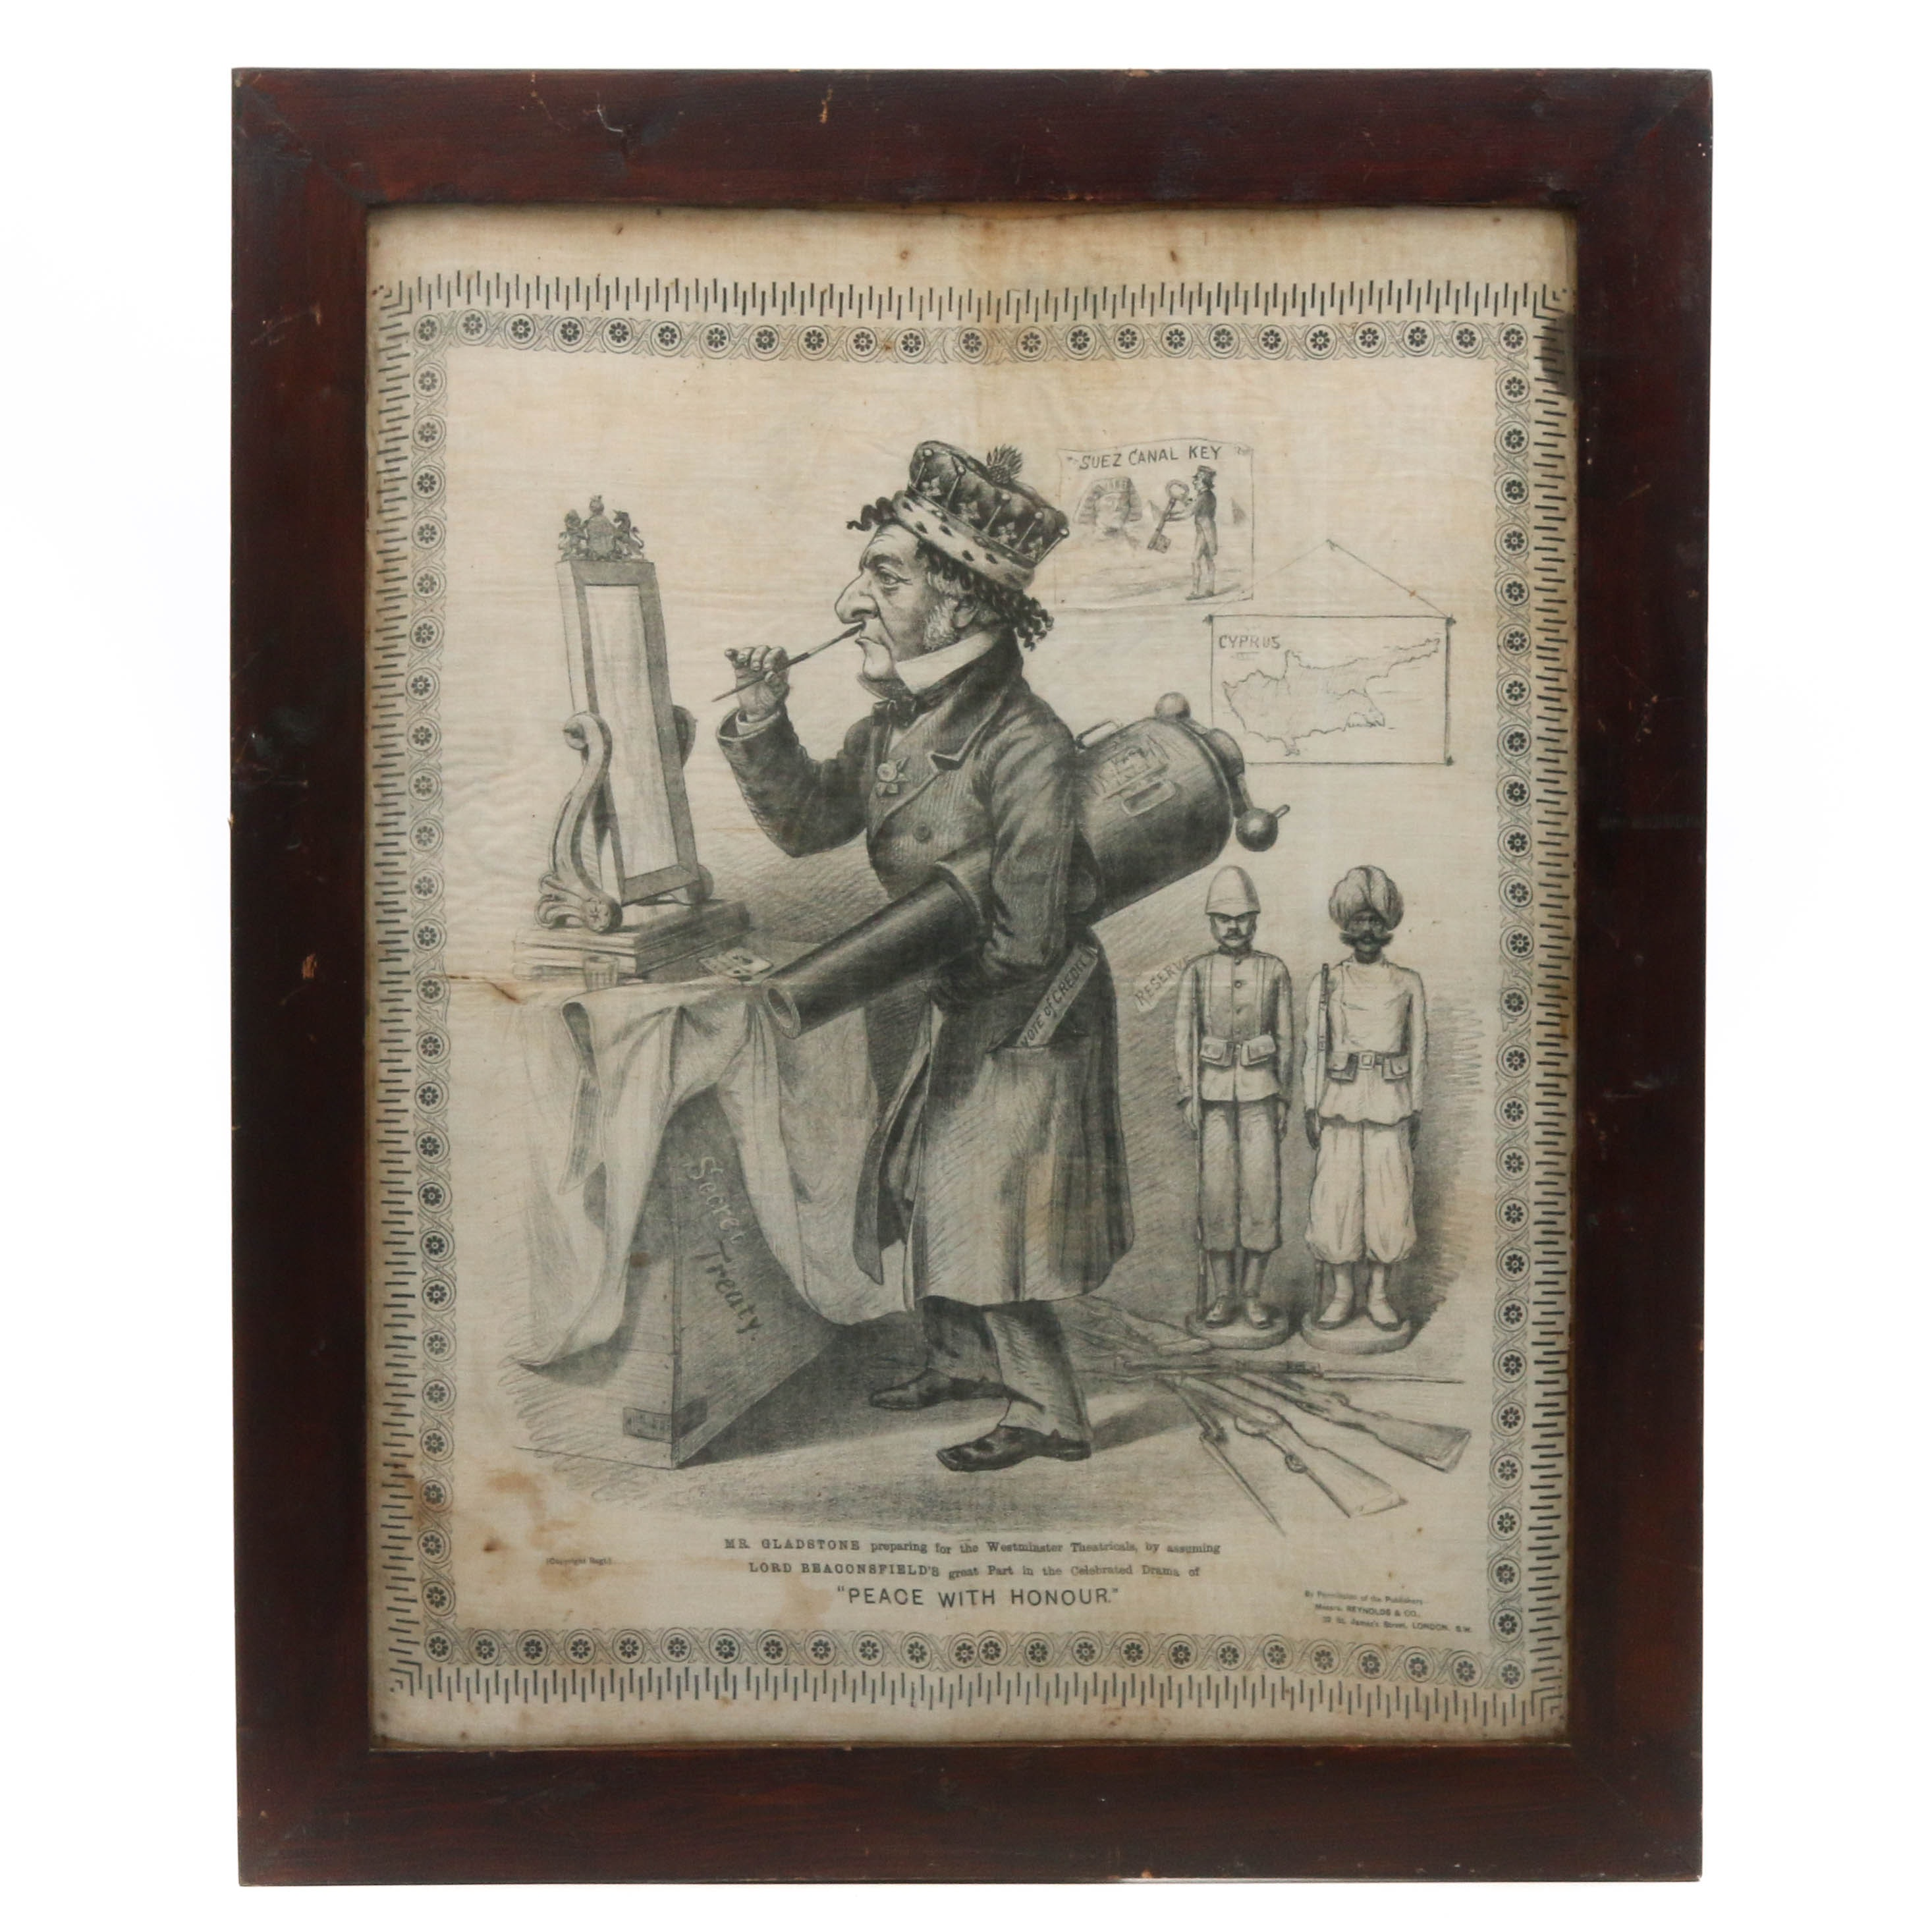 19th Century Editorial Cartoon of Prime Minister Gladstone on Fabric